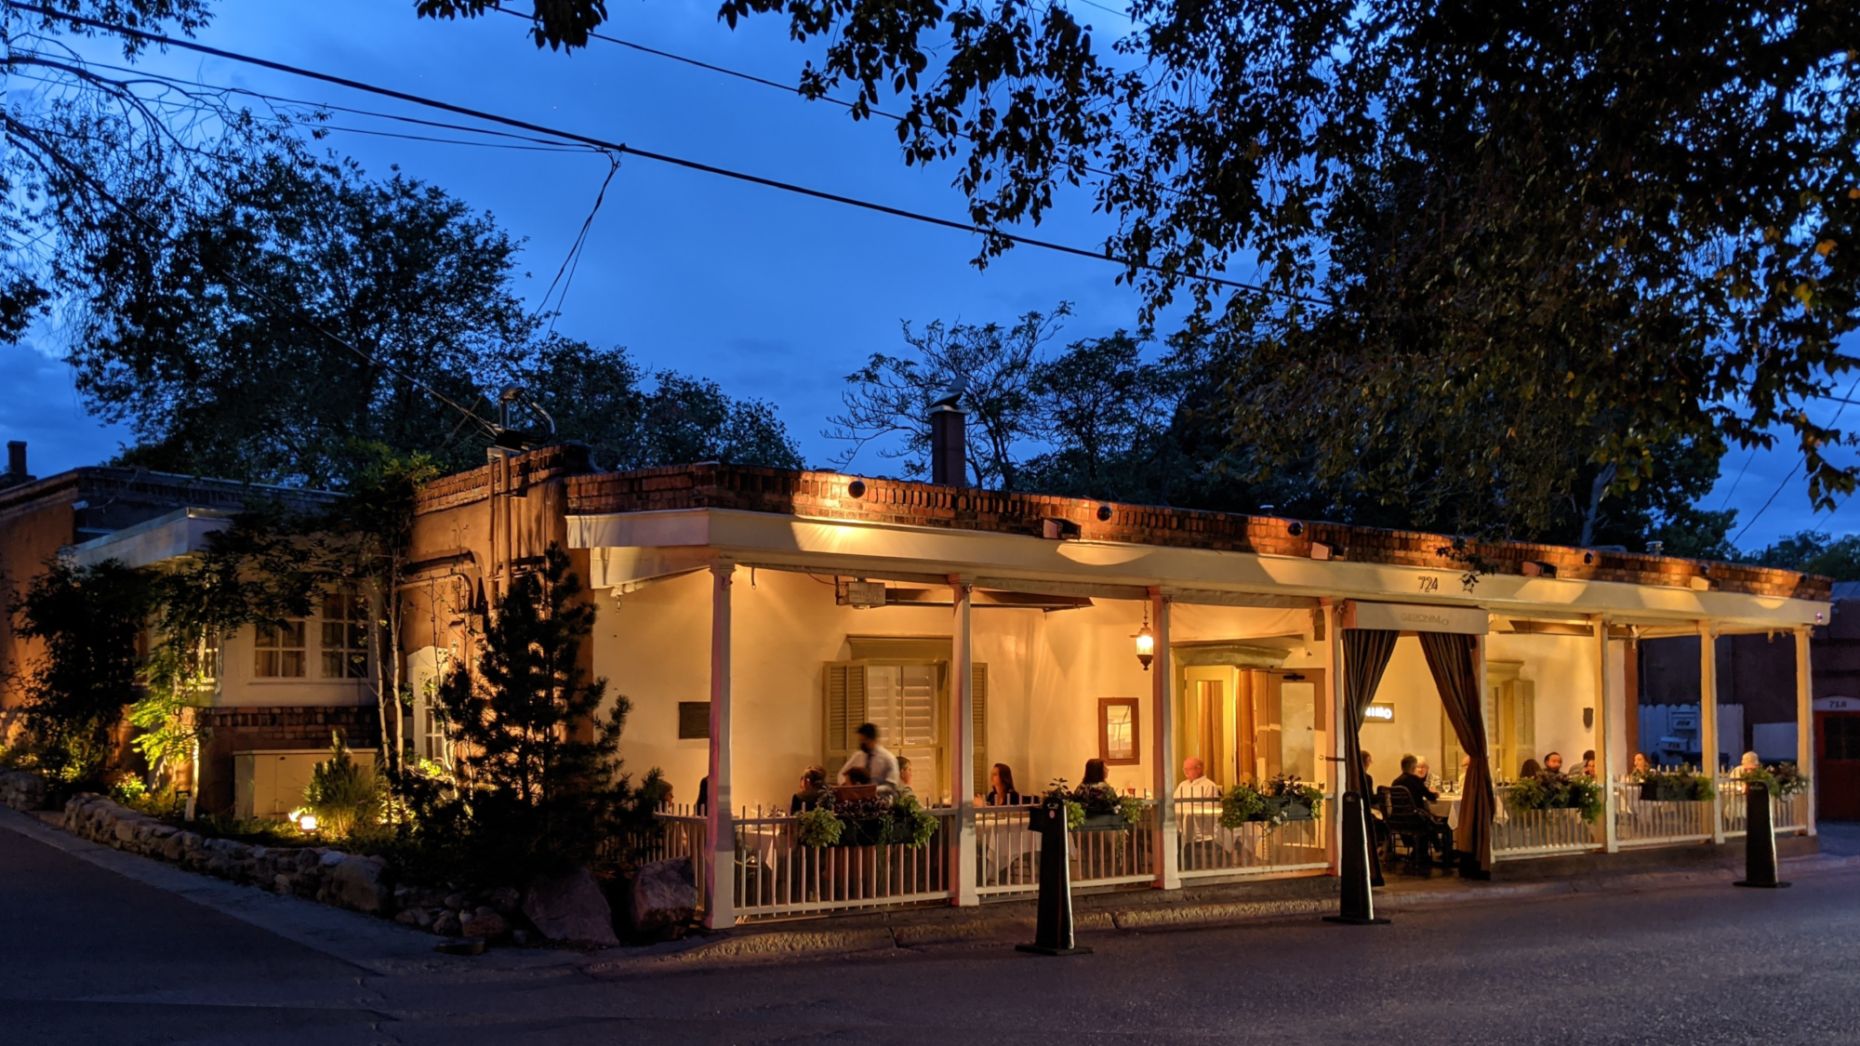 My favorite restaurant in Santa Fe is in a 300 year old adobe on Canyon Rd.